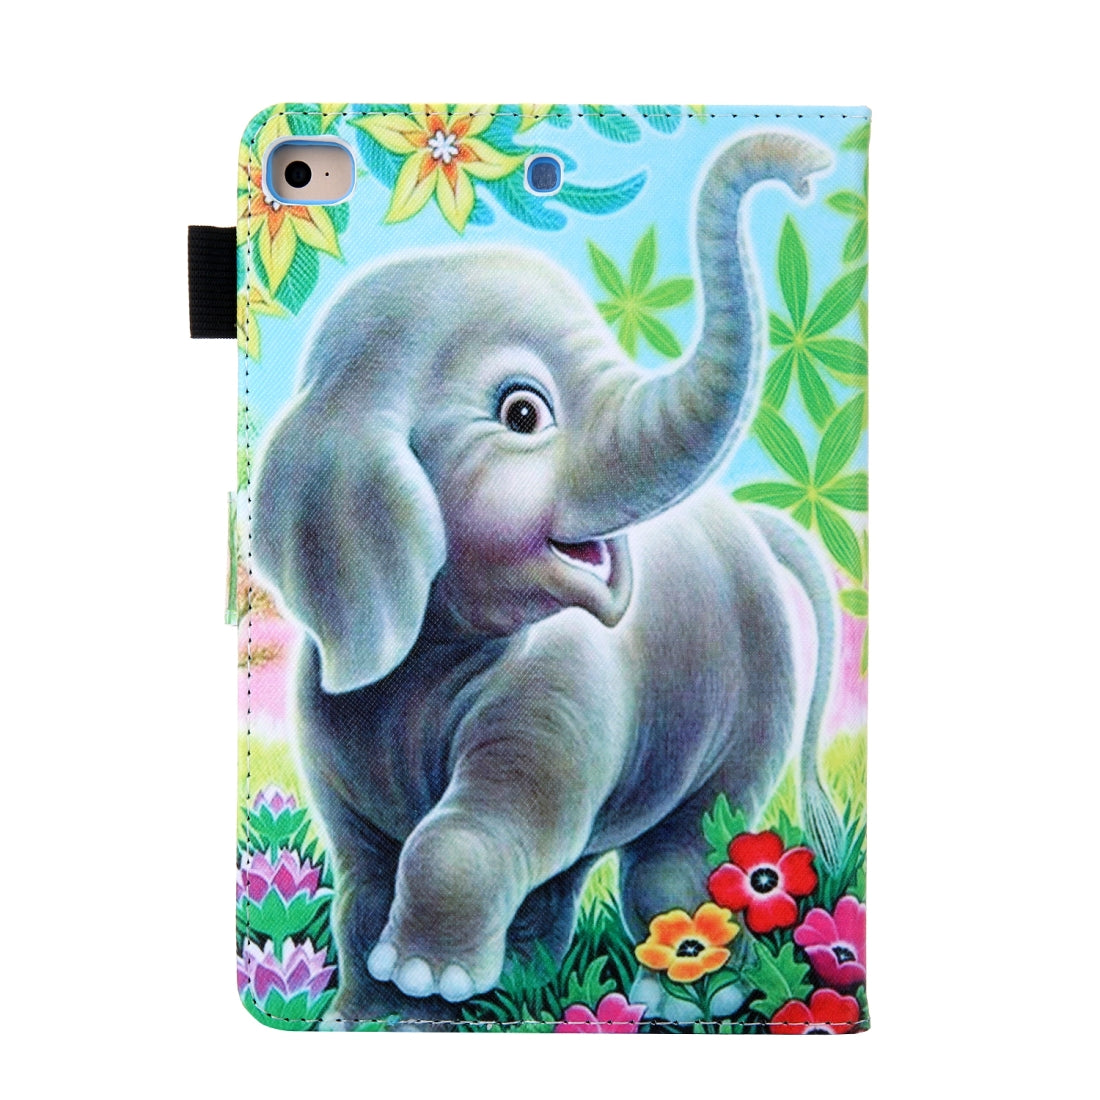 For iPad Mini 1 / 2 / 3 / 4 / 5 Coloured Drawing Pattern Horizontal Flip Leather Case with Holder & Card Slot(Elephant)